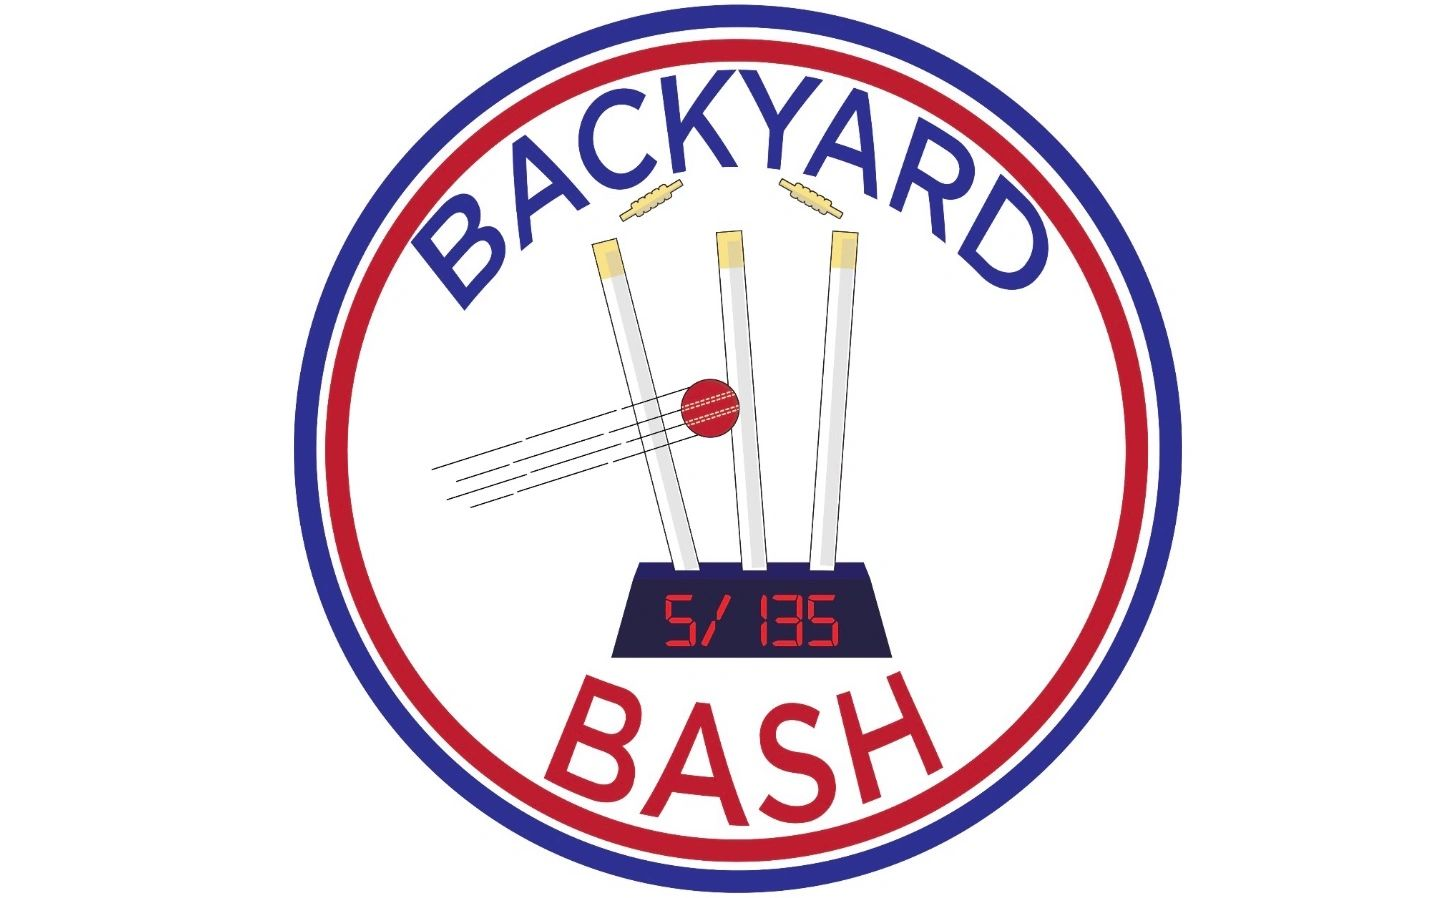 Backyard Bash logo.jpg